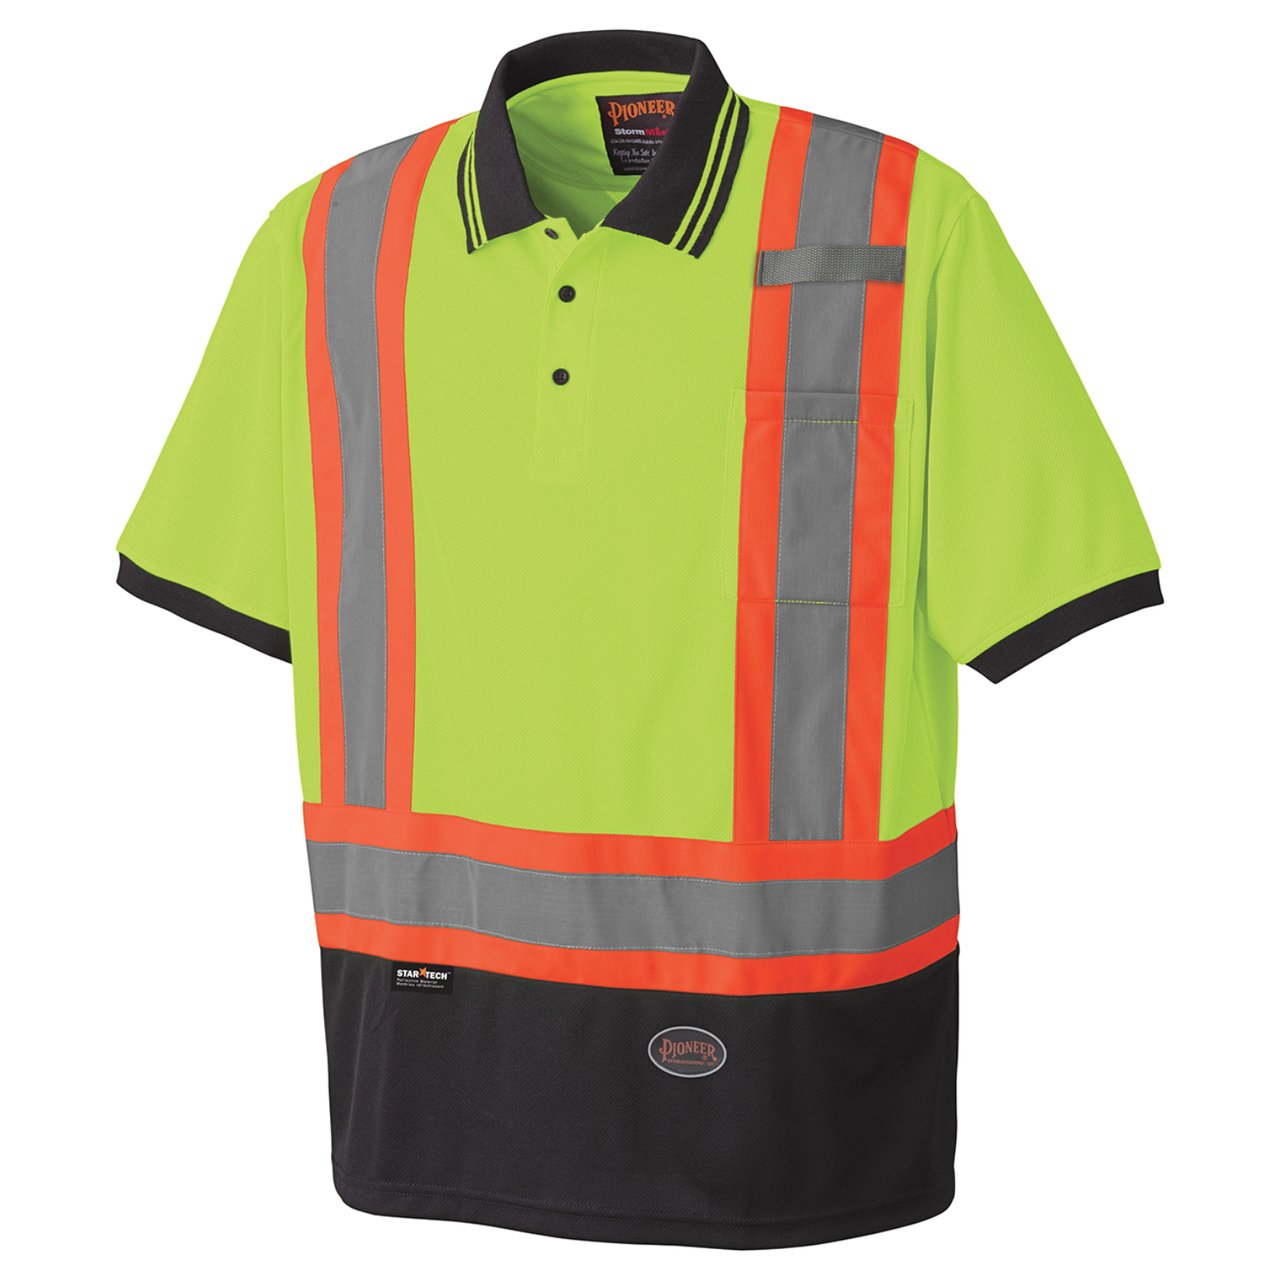 6987 Birdseye Safety Polo Shirt Safetywear